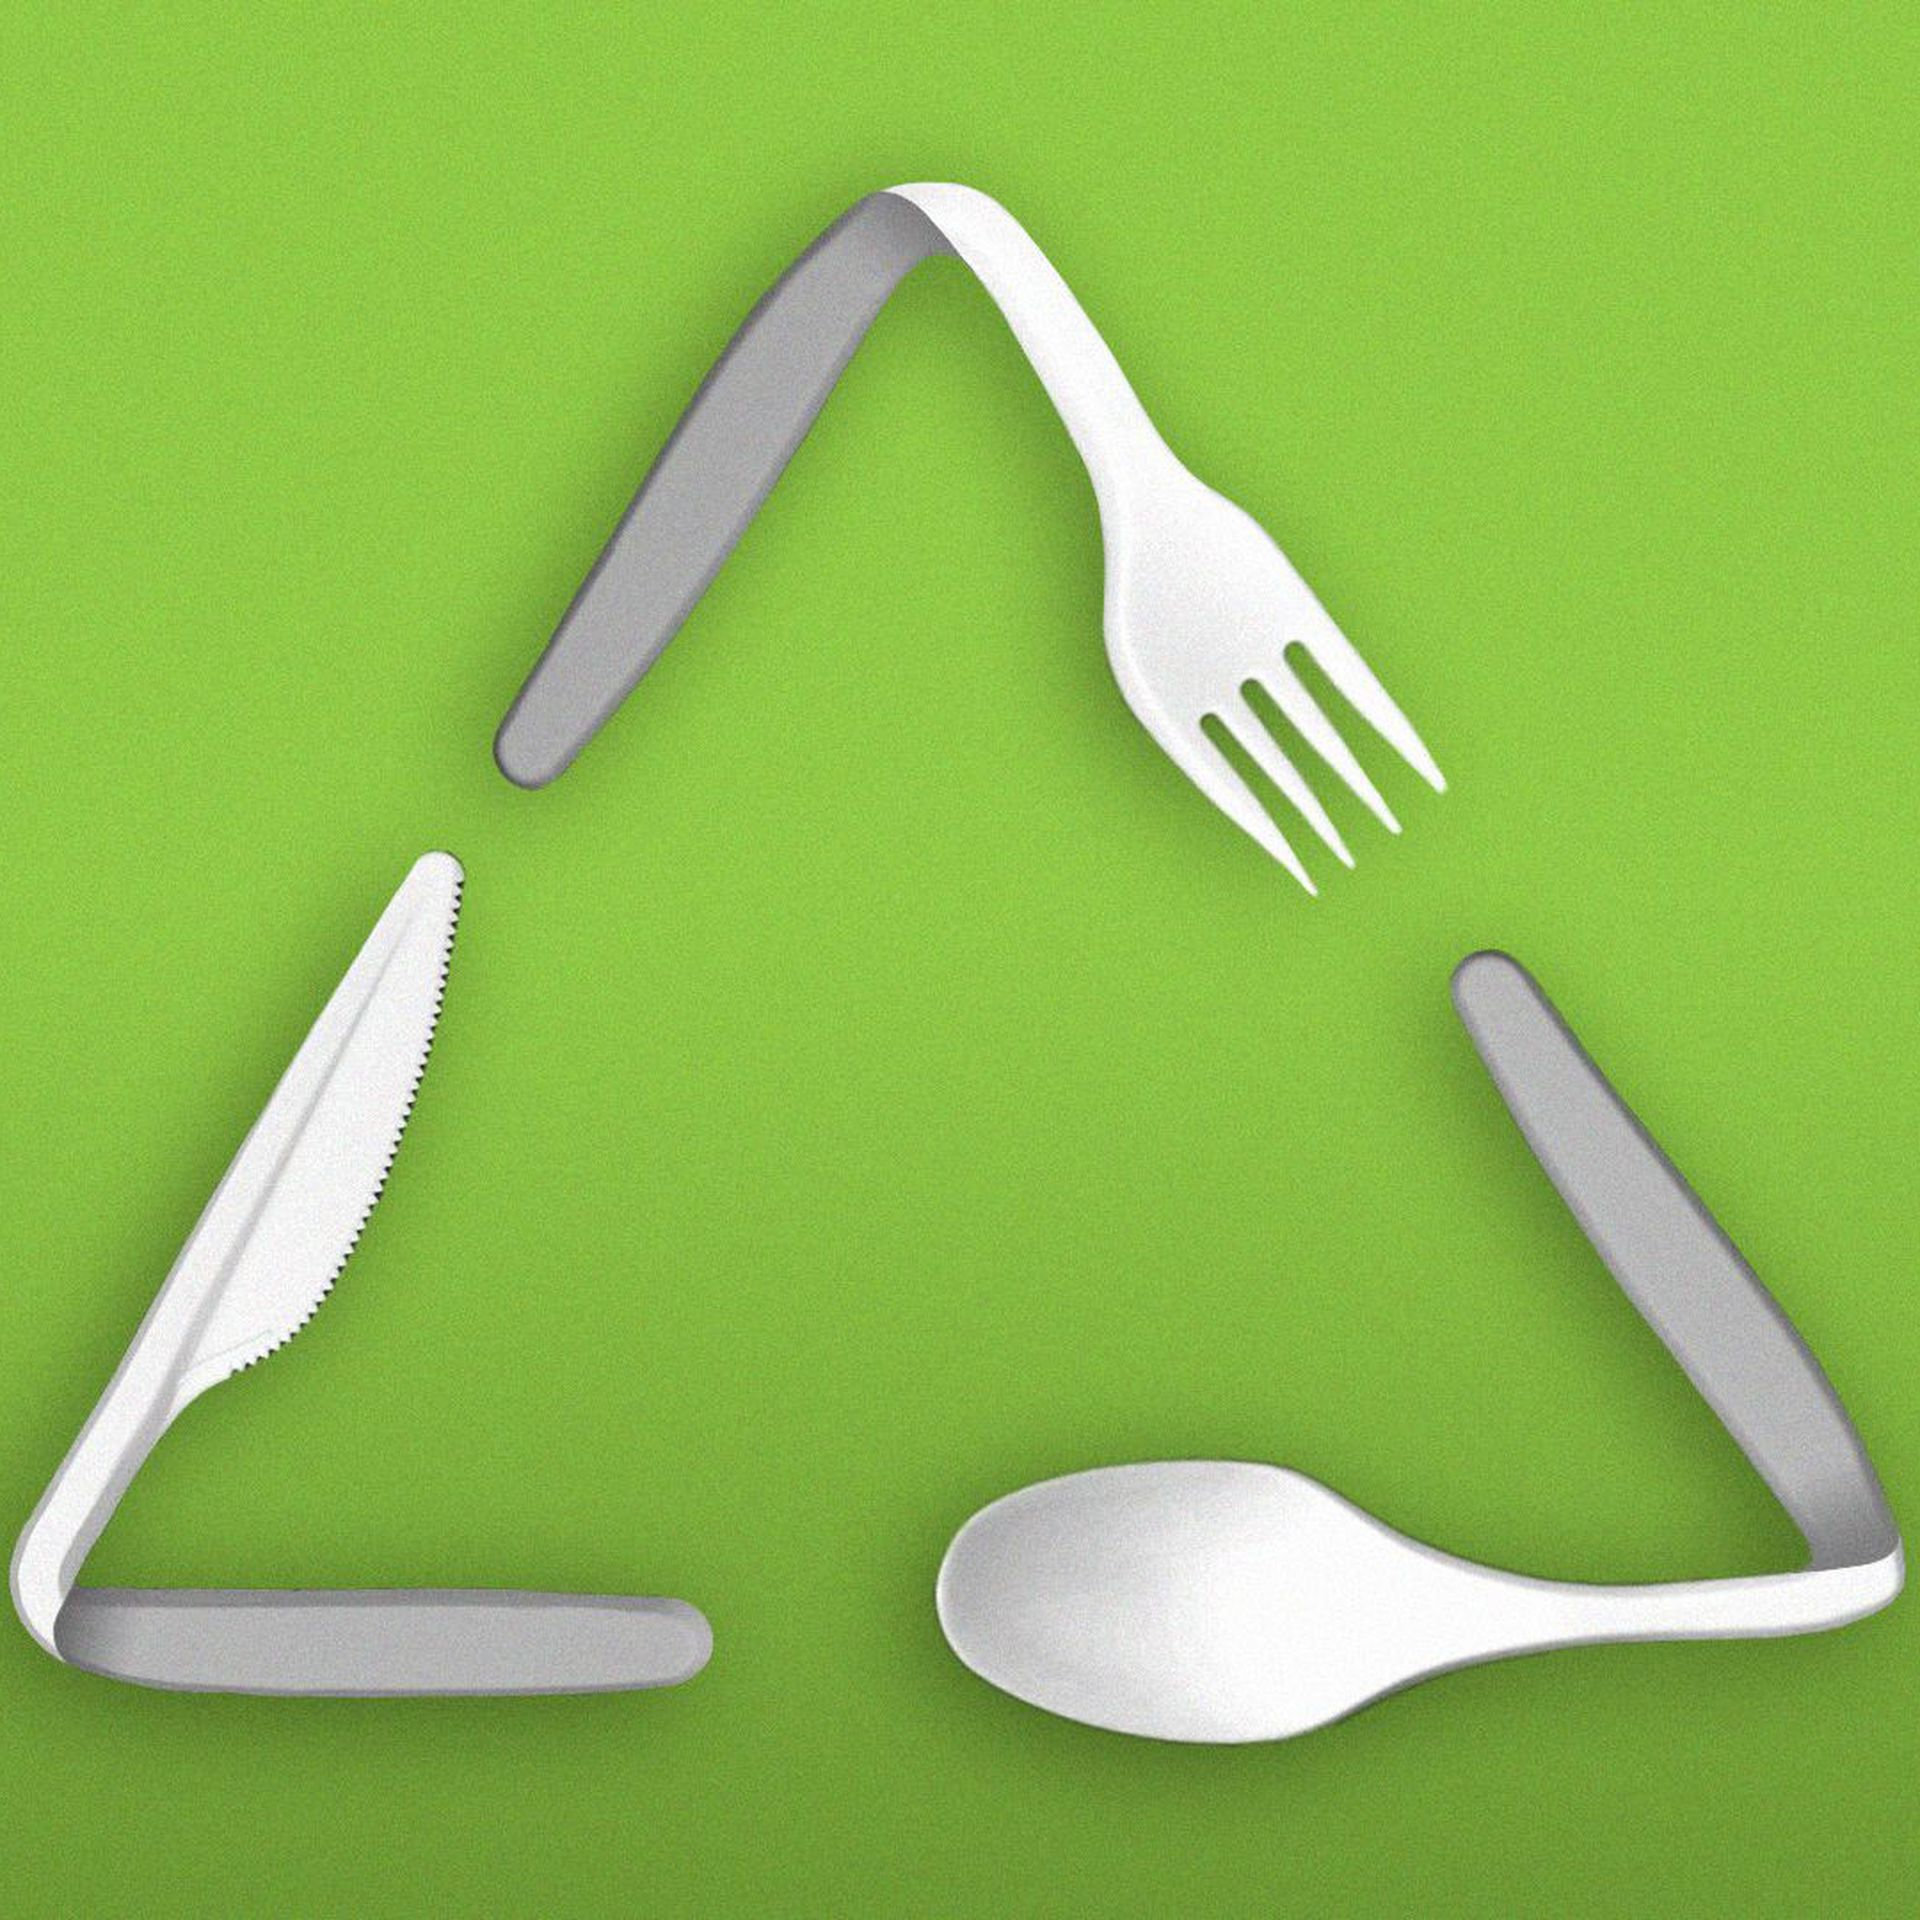 Recycling symbol made of plastic utensils